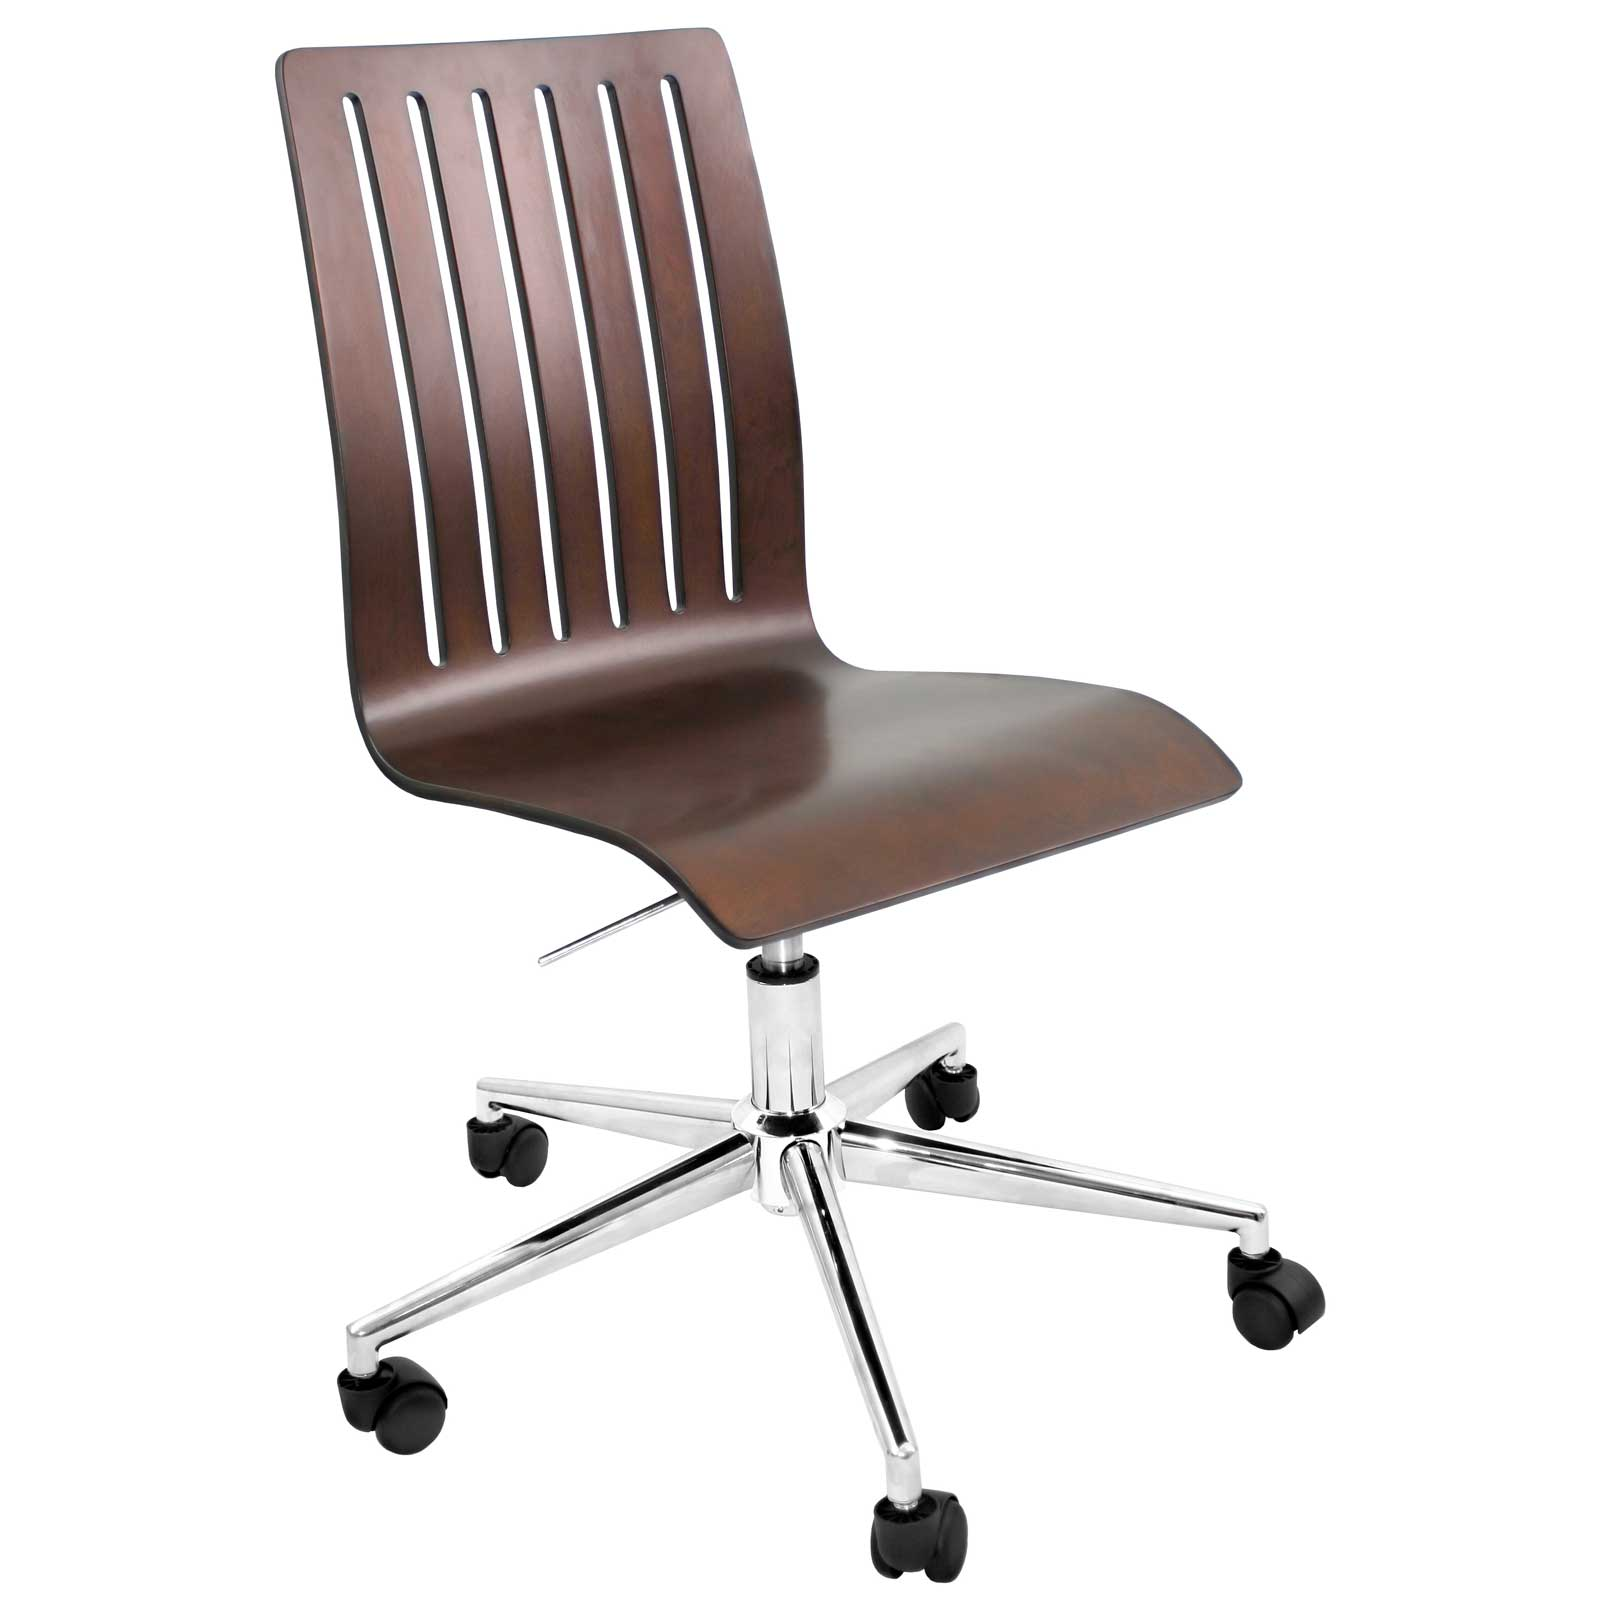 Bentley Wenge Sleek Wood Office Chairs